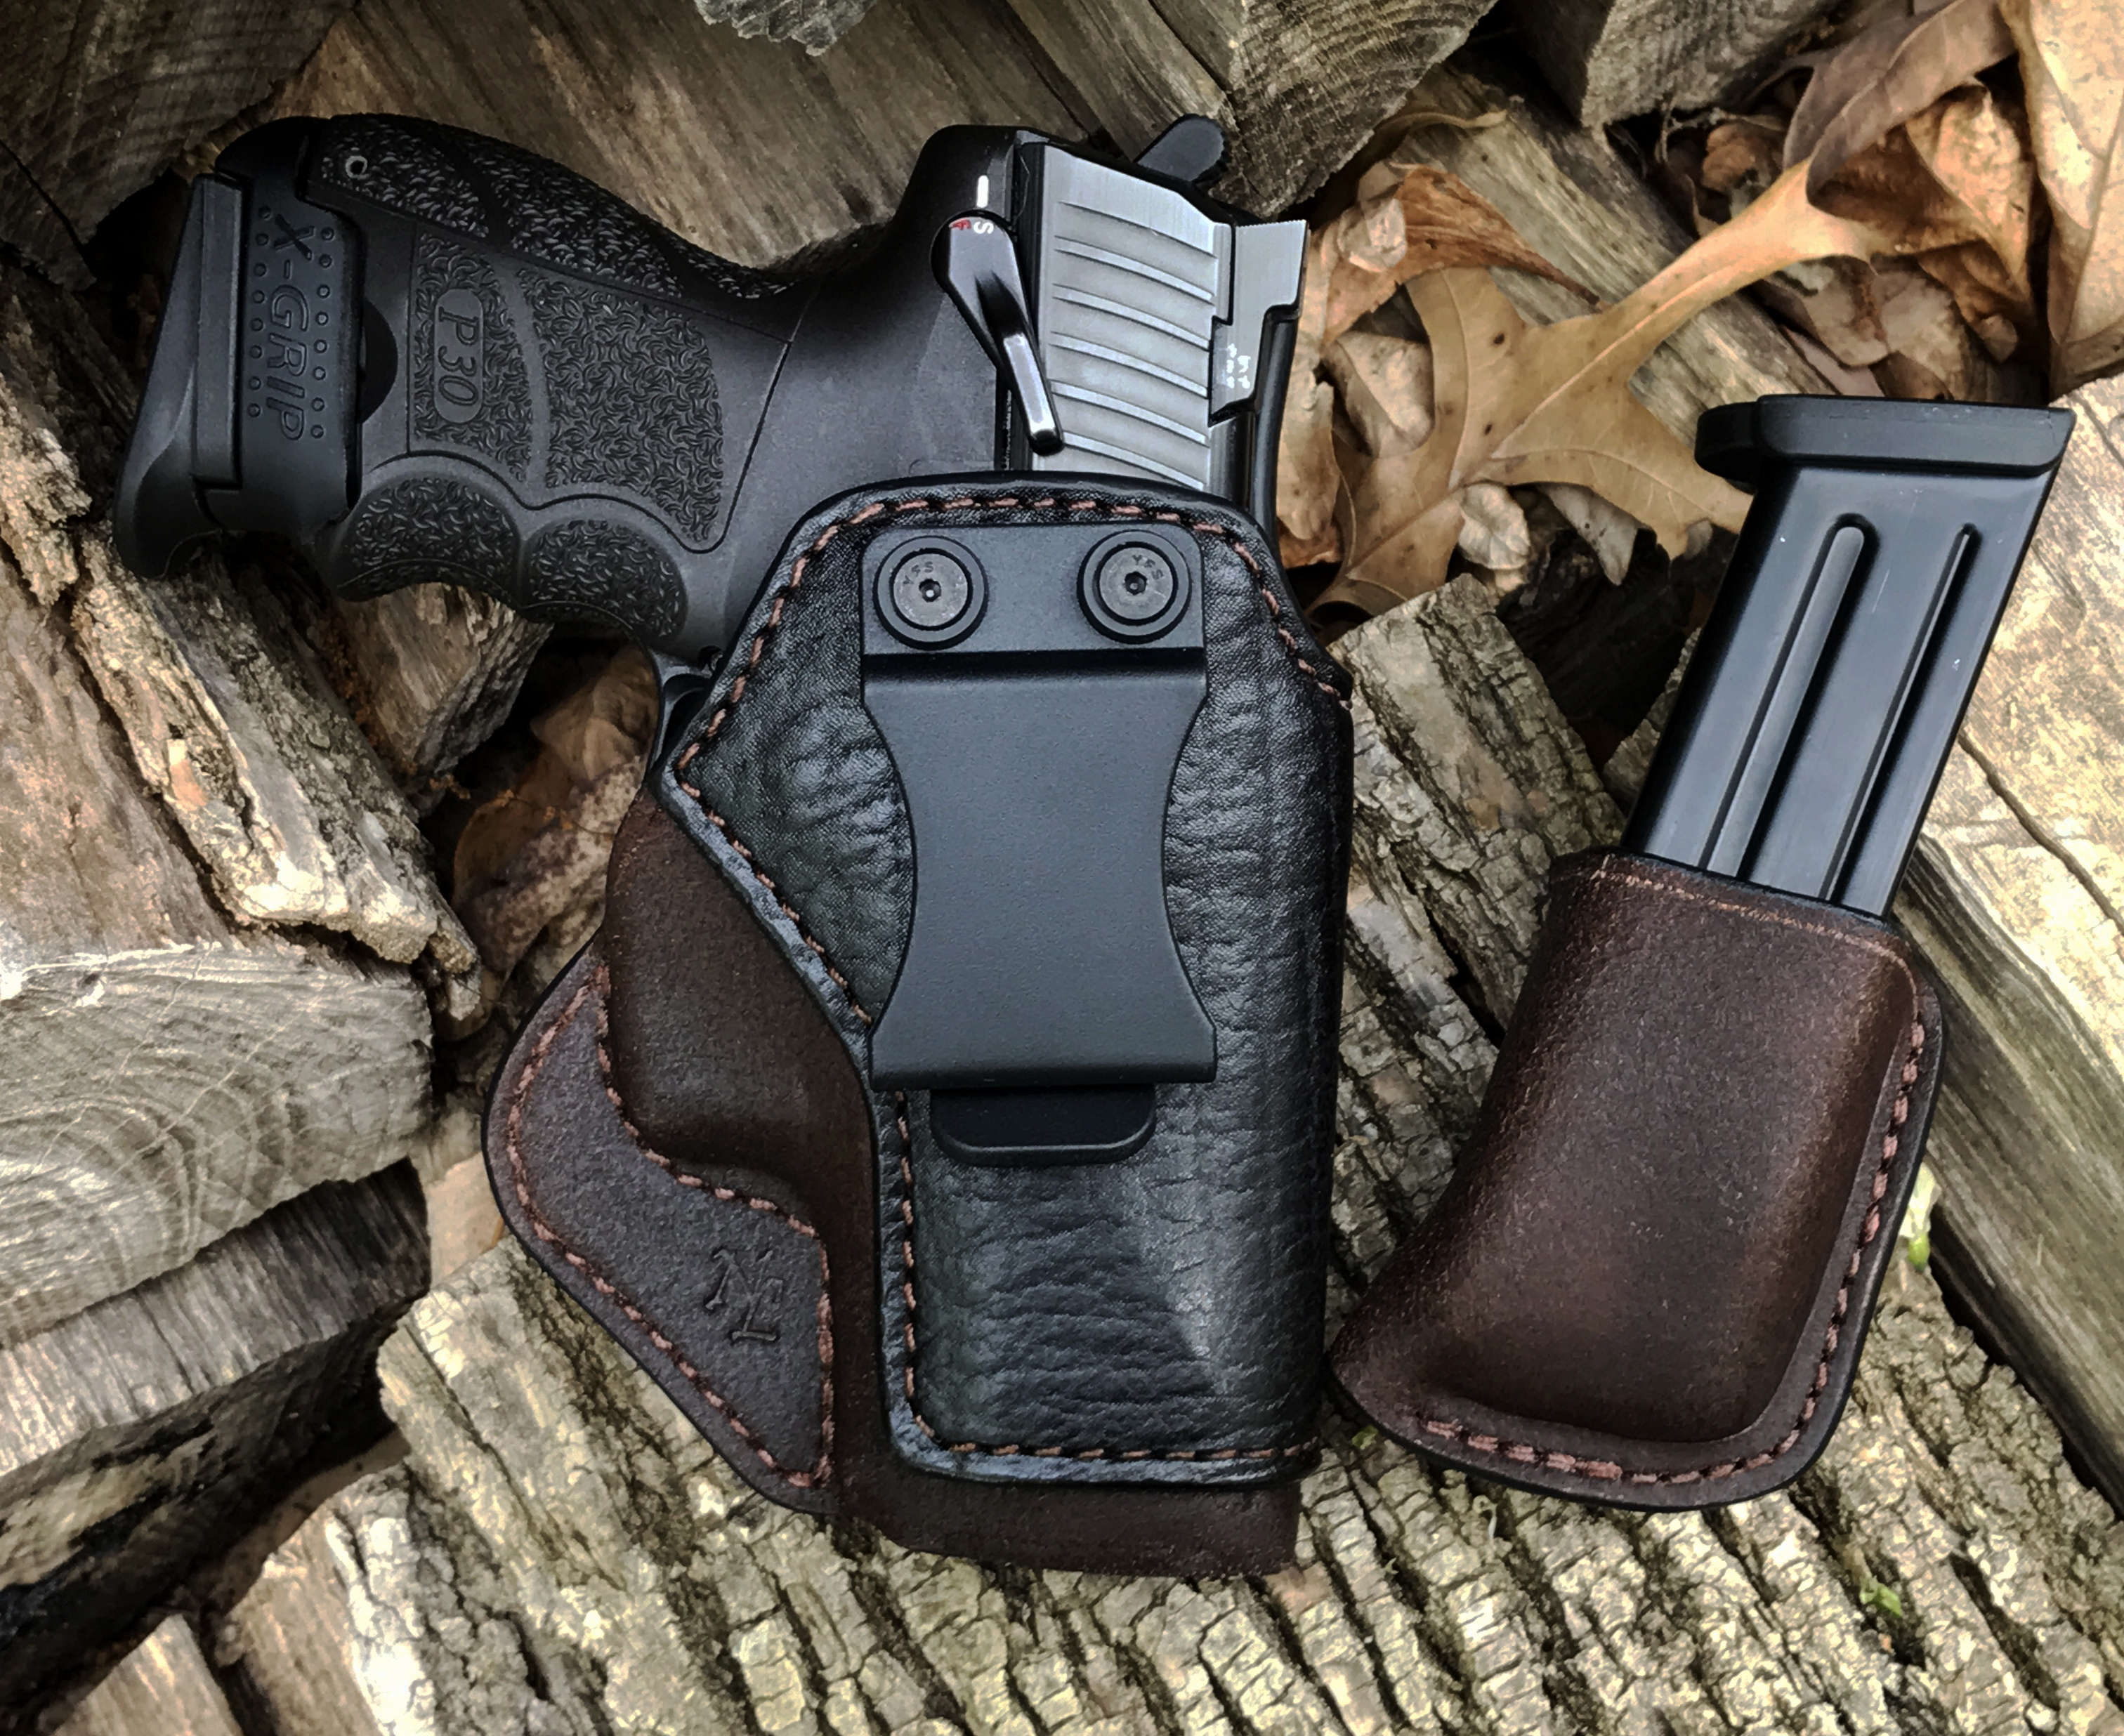 Show off your EDC HK-nightingale-leather-hk-p30sk-snipe-iwb-holster.jpg